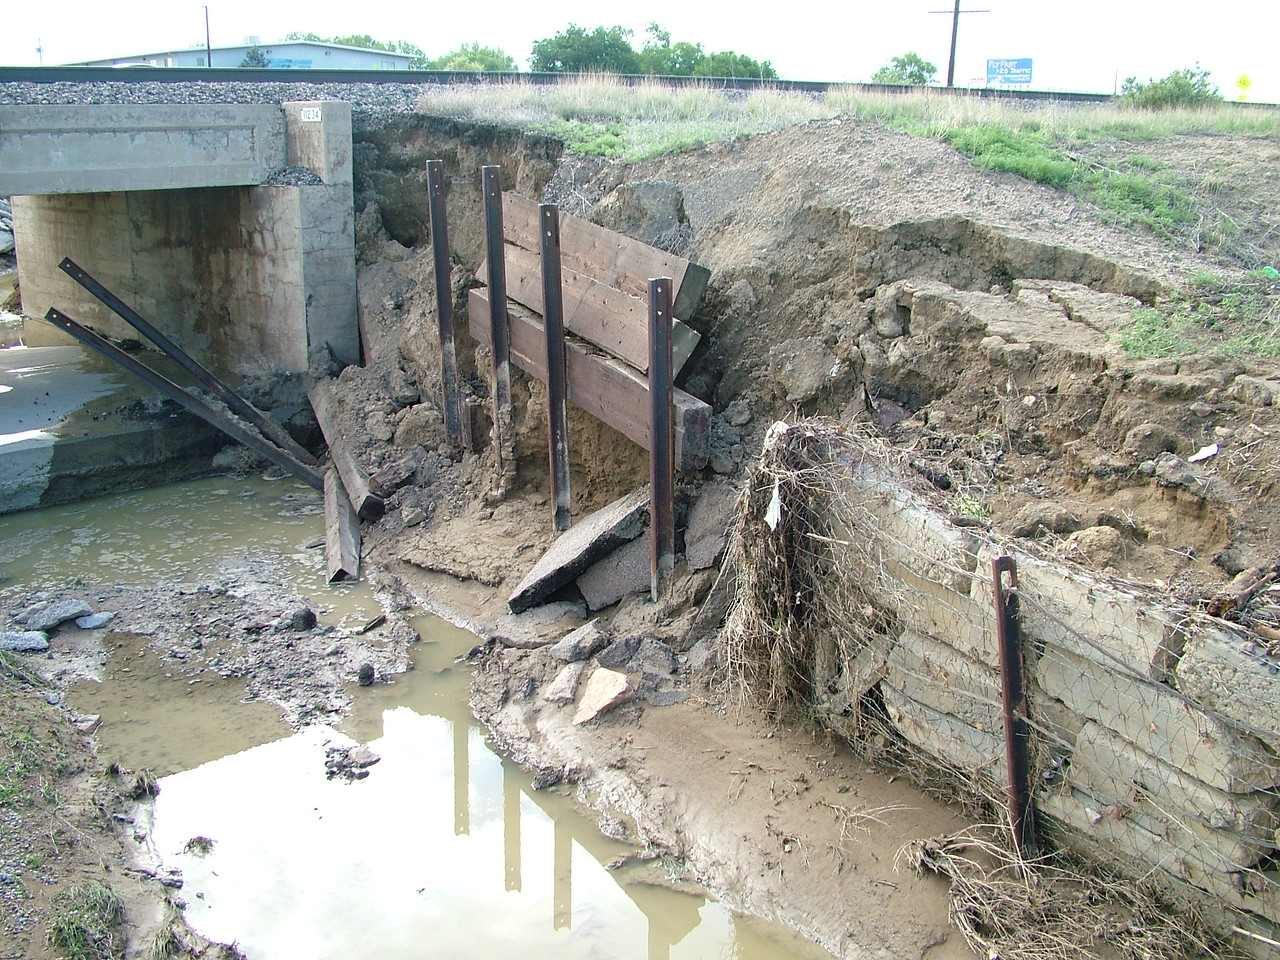 Retaining wall collapse. That bridge is for the train tracks.